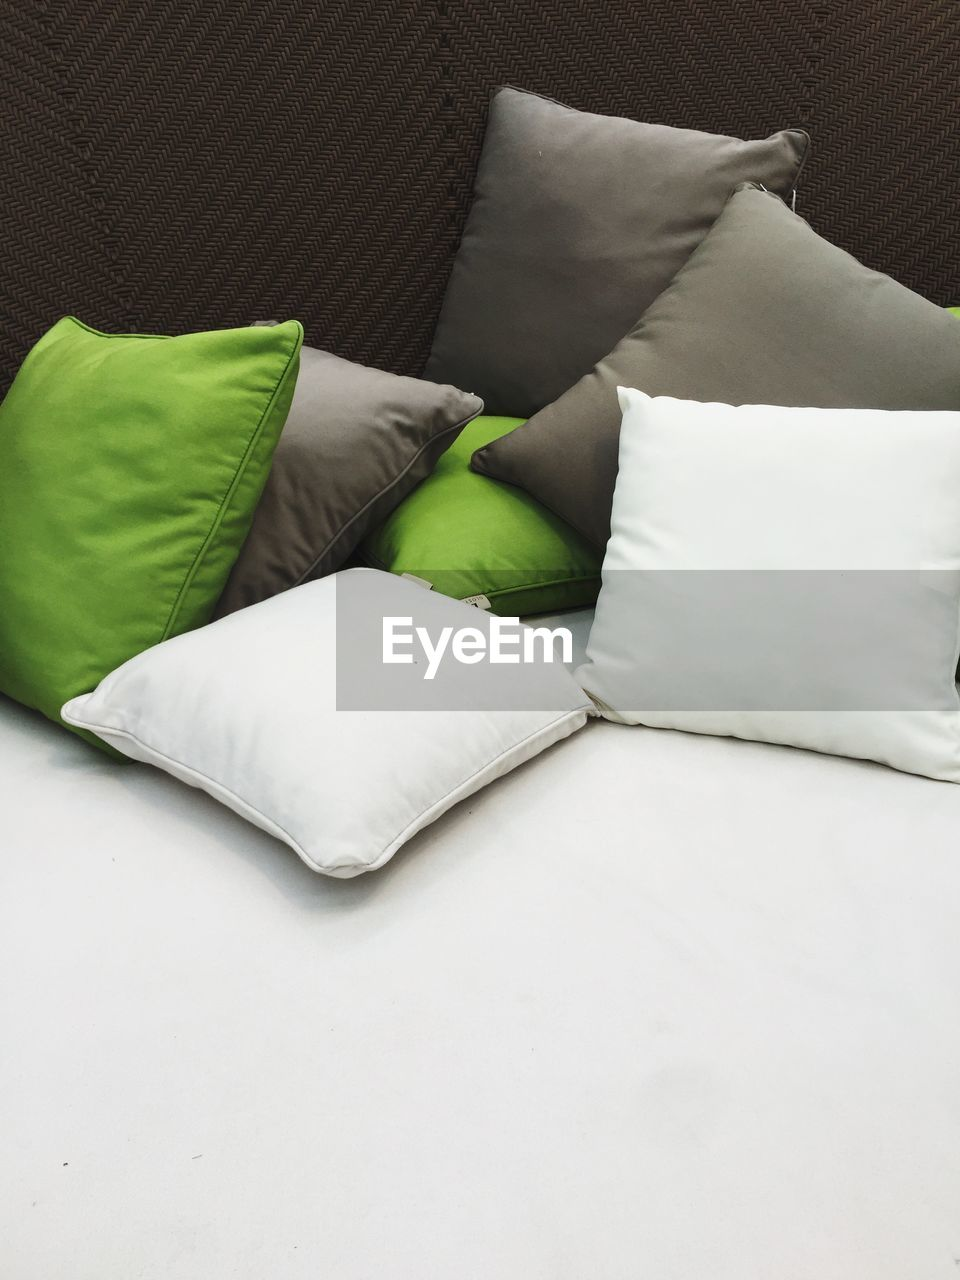 furniture, indoors, pillow, still life, high angle view, no people, bed, stuffed, cushion, sofa, relaxation, domestic room, green color, white color, paper, textile, sheet, bedroom, linen, comfortable, softness, duvet